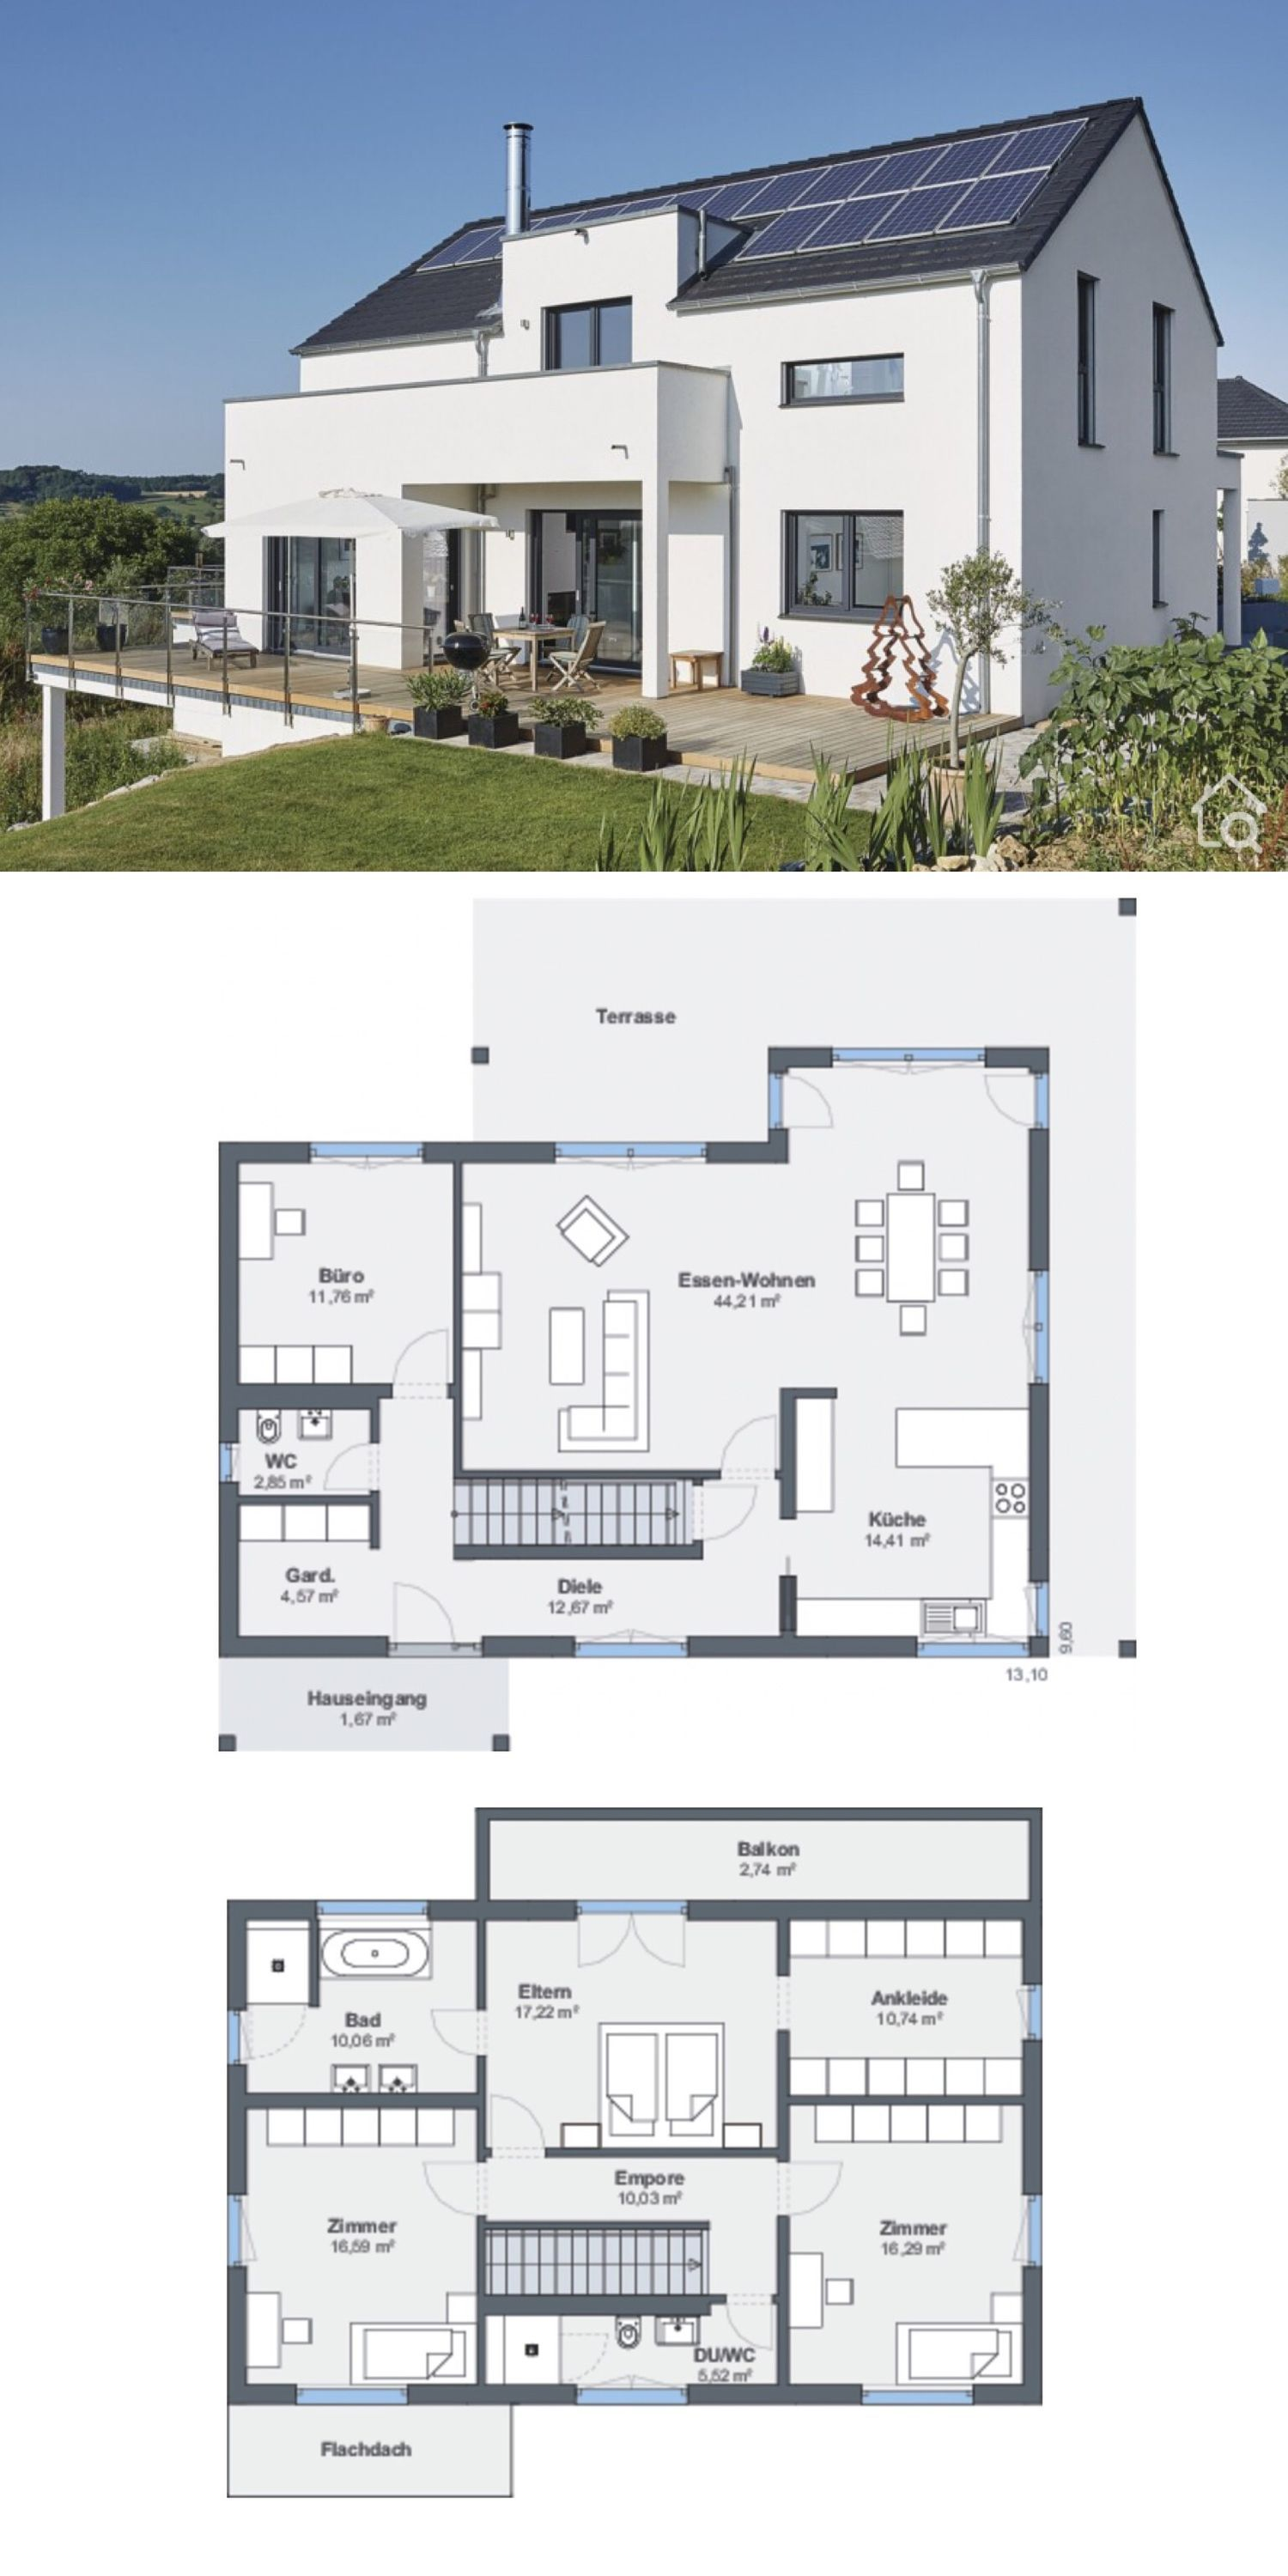 Modern House Architecture Design Ideas On A Hill Floor Plans With Apartment Attached European Architecture Design Modern House Plans House Architecture Design